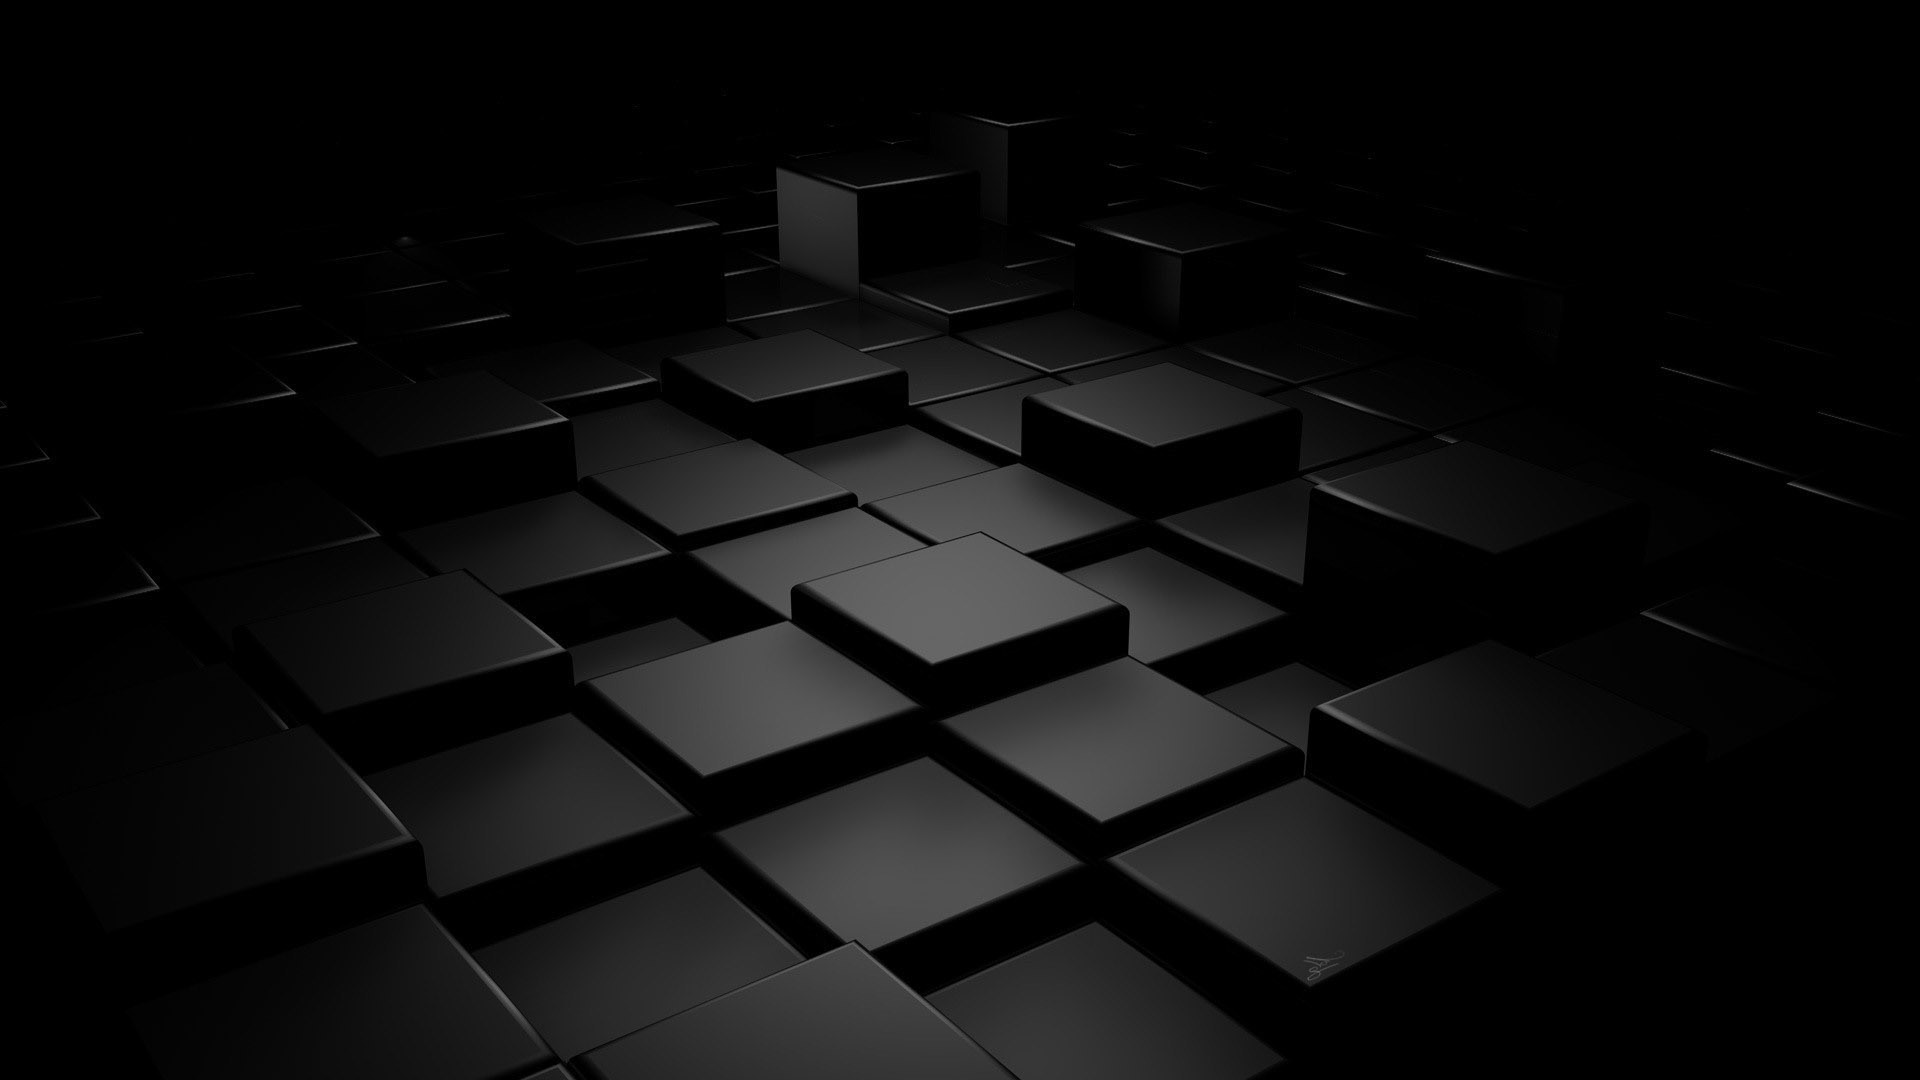 Black abstract Wallpapers Images Photos Pictures Backgrounds